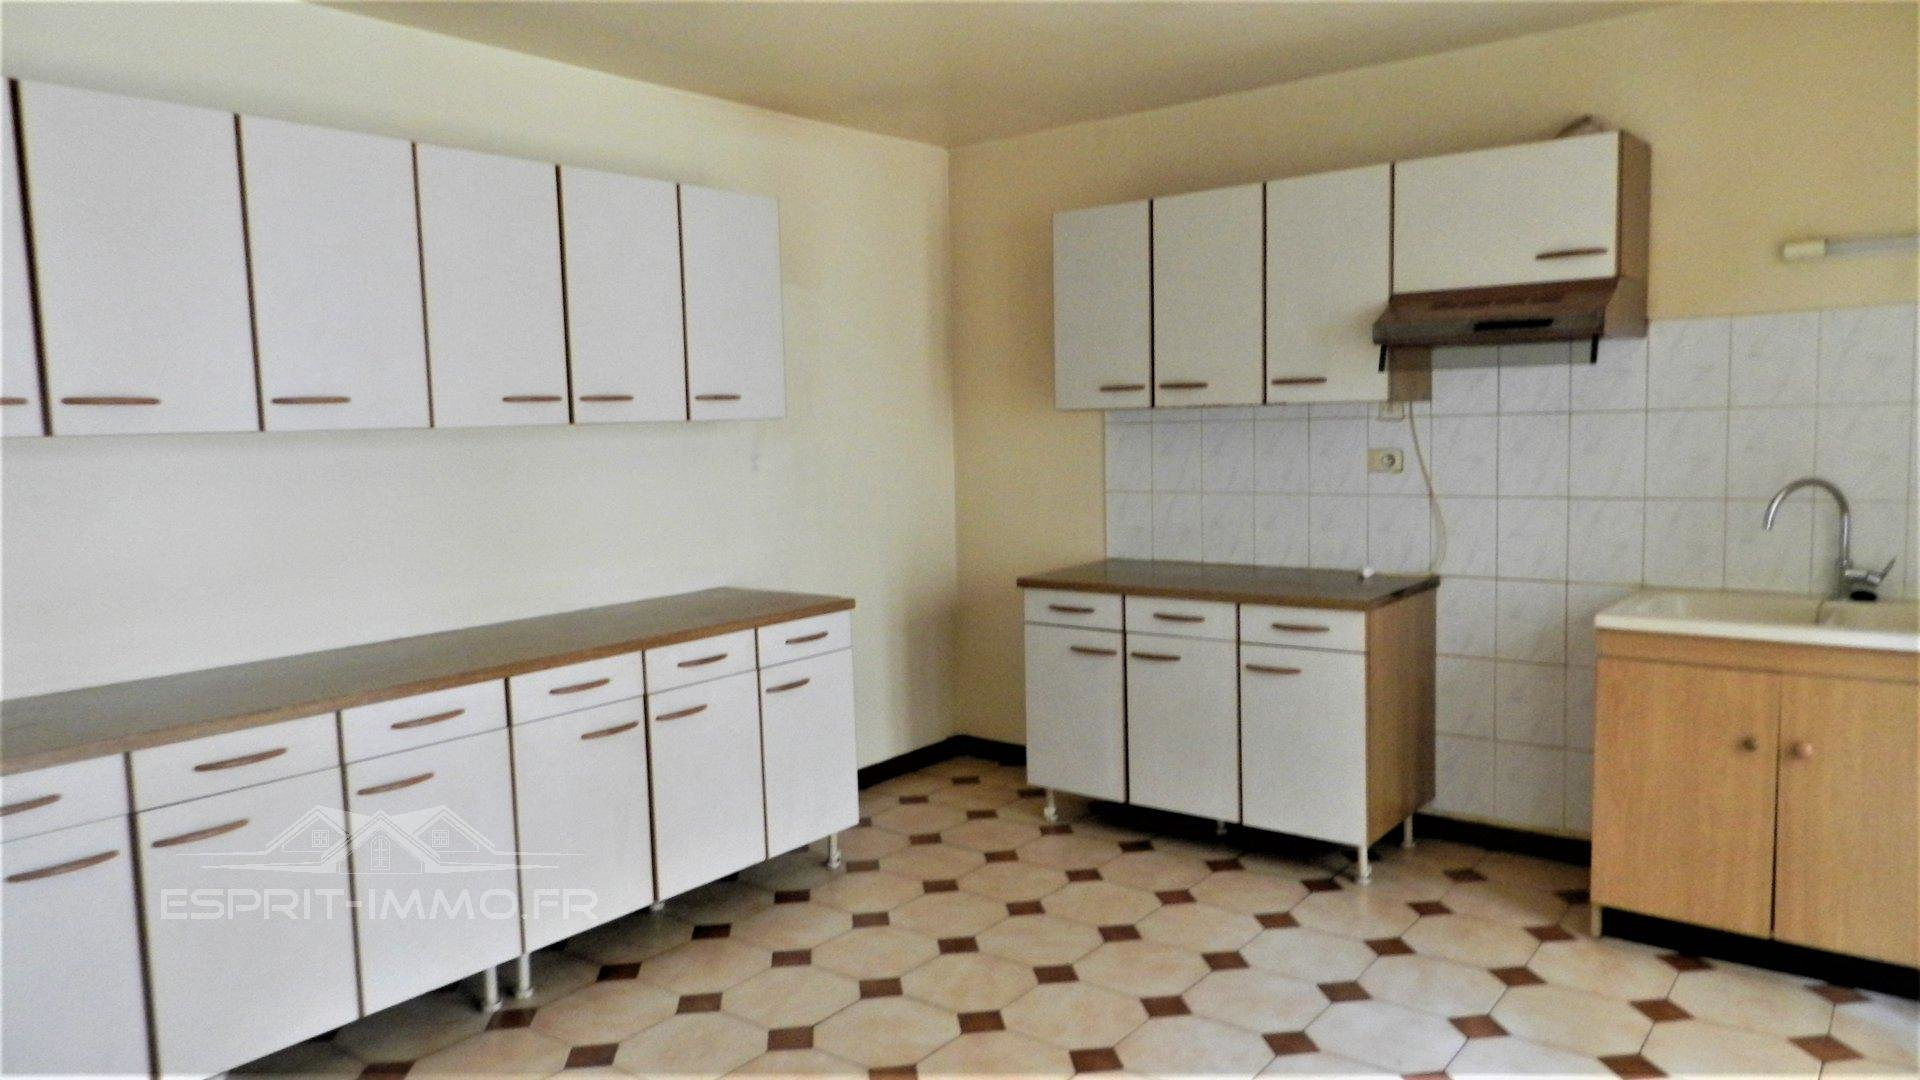 property_areas:3 property_flooring:2 general:13